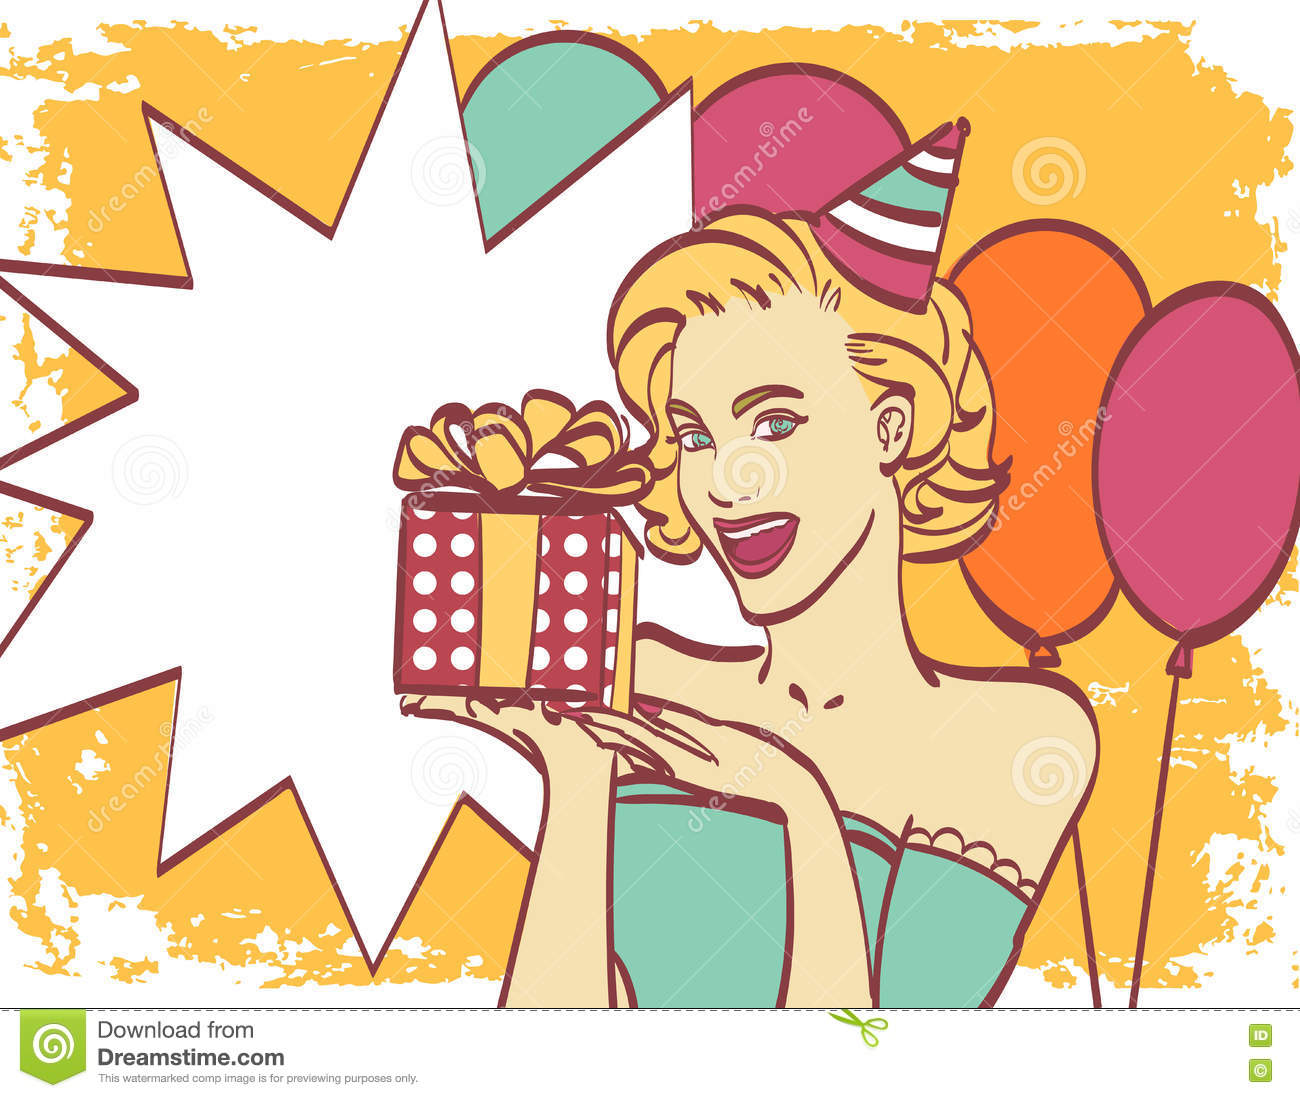 Pop Art Girl With Thought Bubble Party Invitation Birthday Card Hollywood Movie Star Comic Woman Girl Sale Stock Vector Illustration Of Cute Retro 77997568